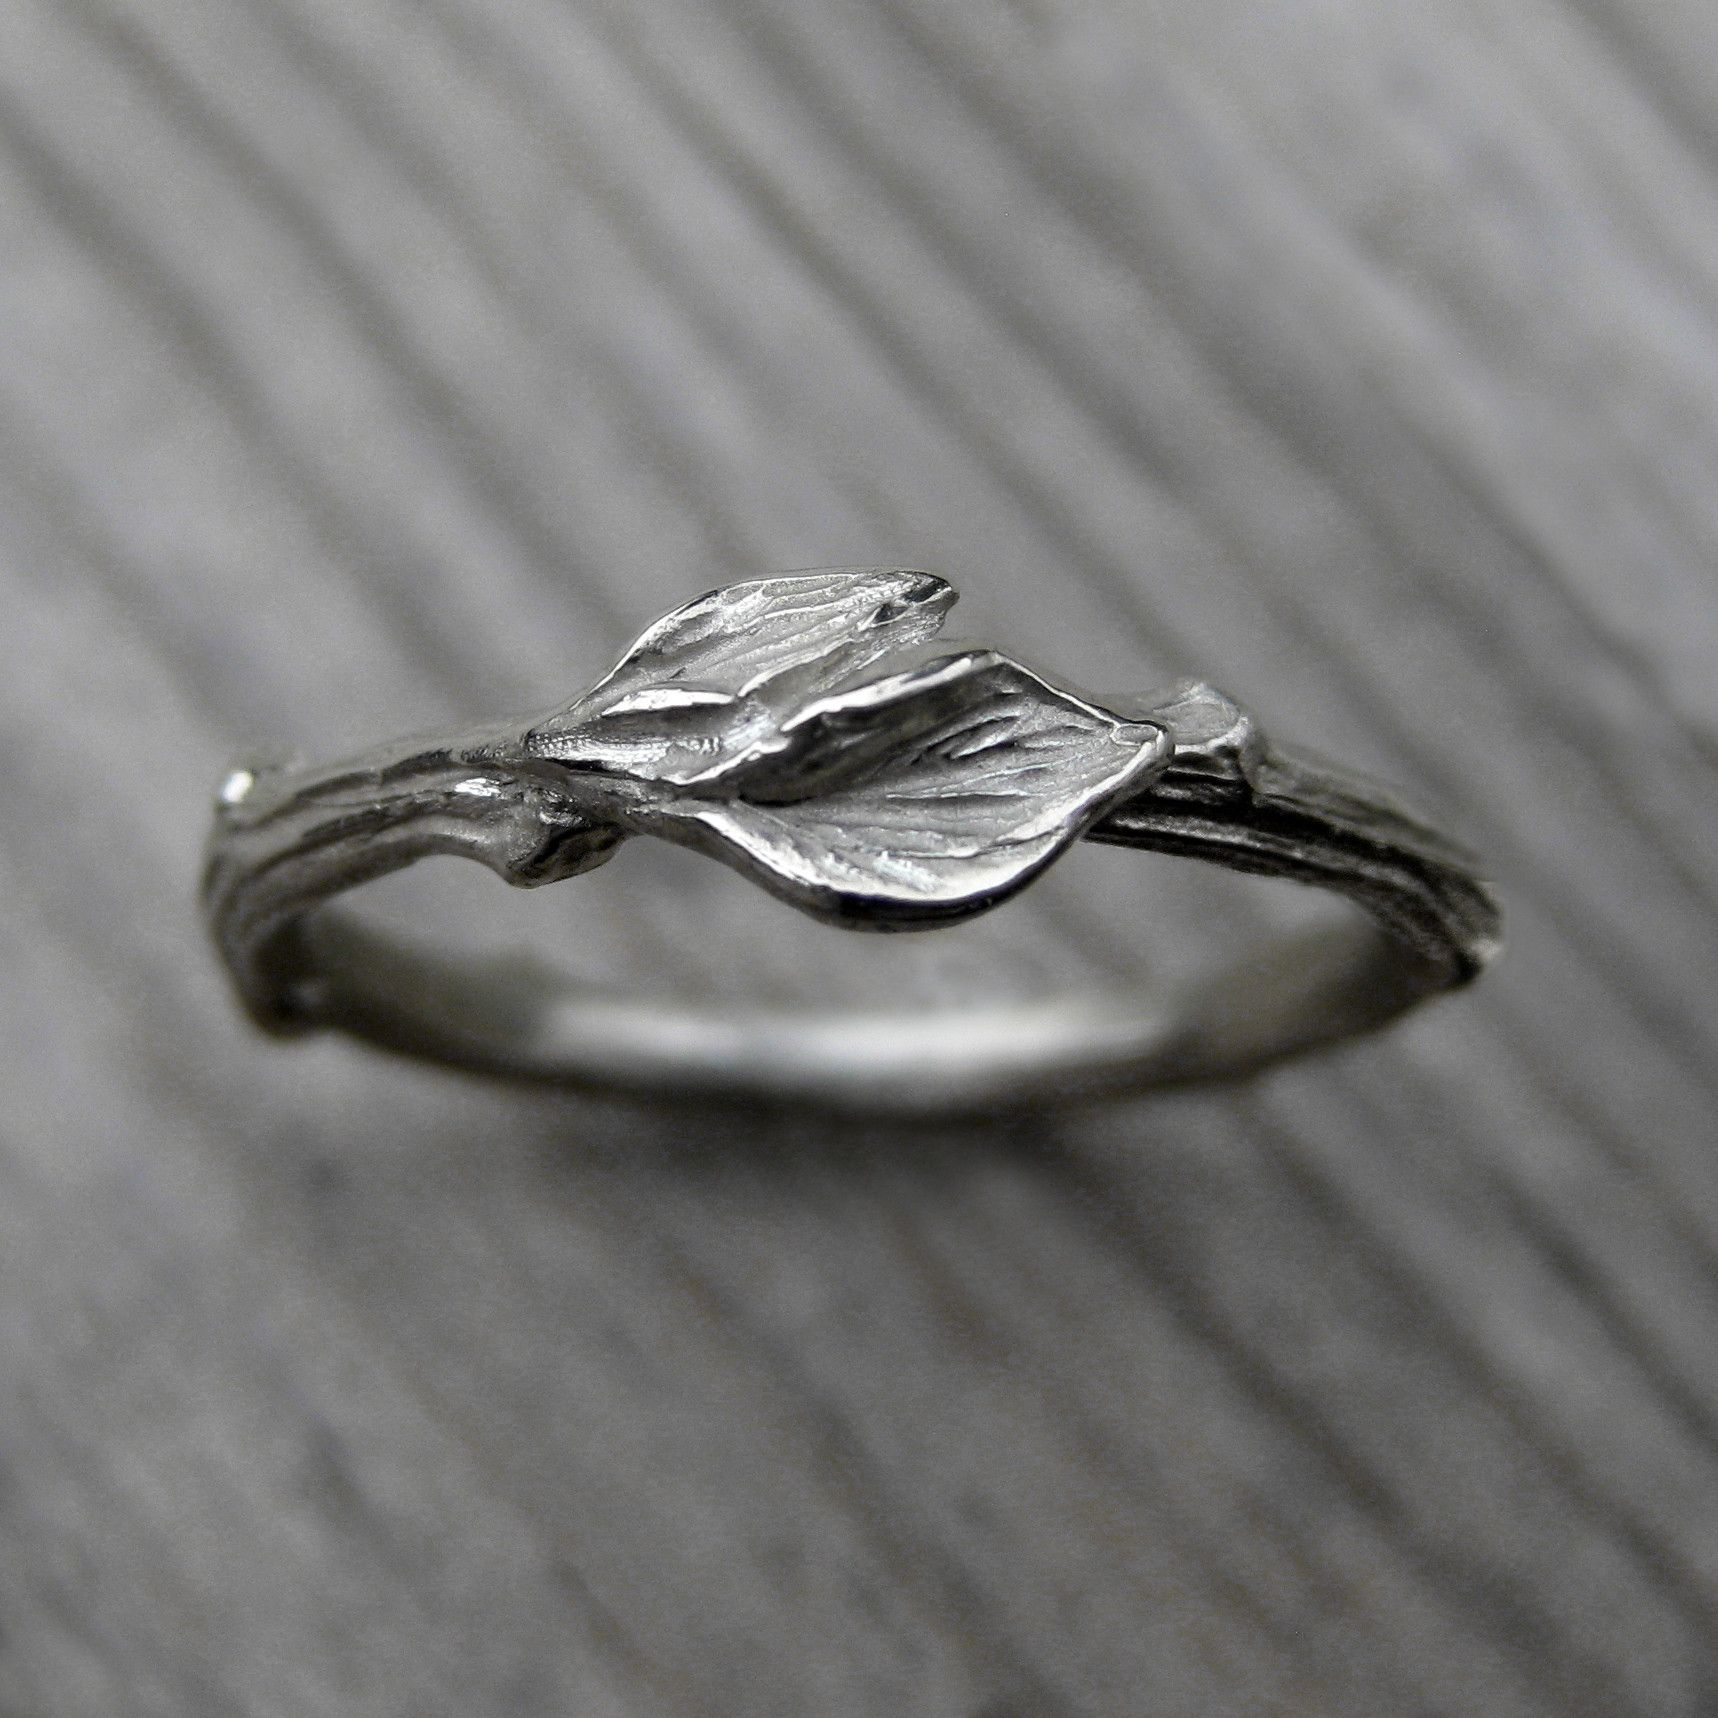 alternative wedding bands Twig with Leaves Wedding Band By Kristin Coffin Jewelry Available in rose yellow